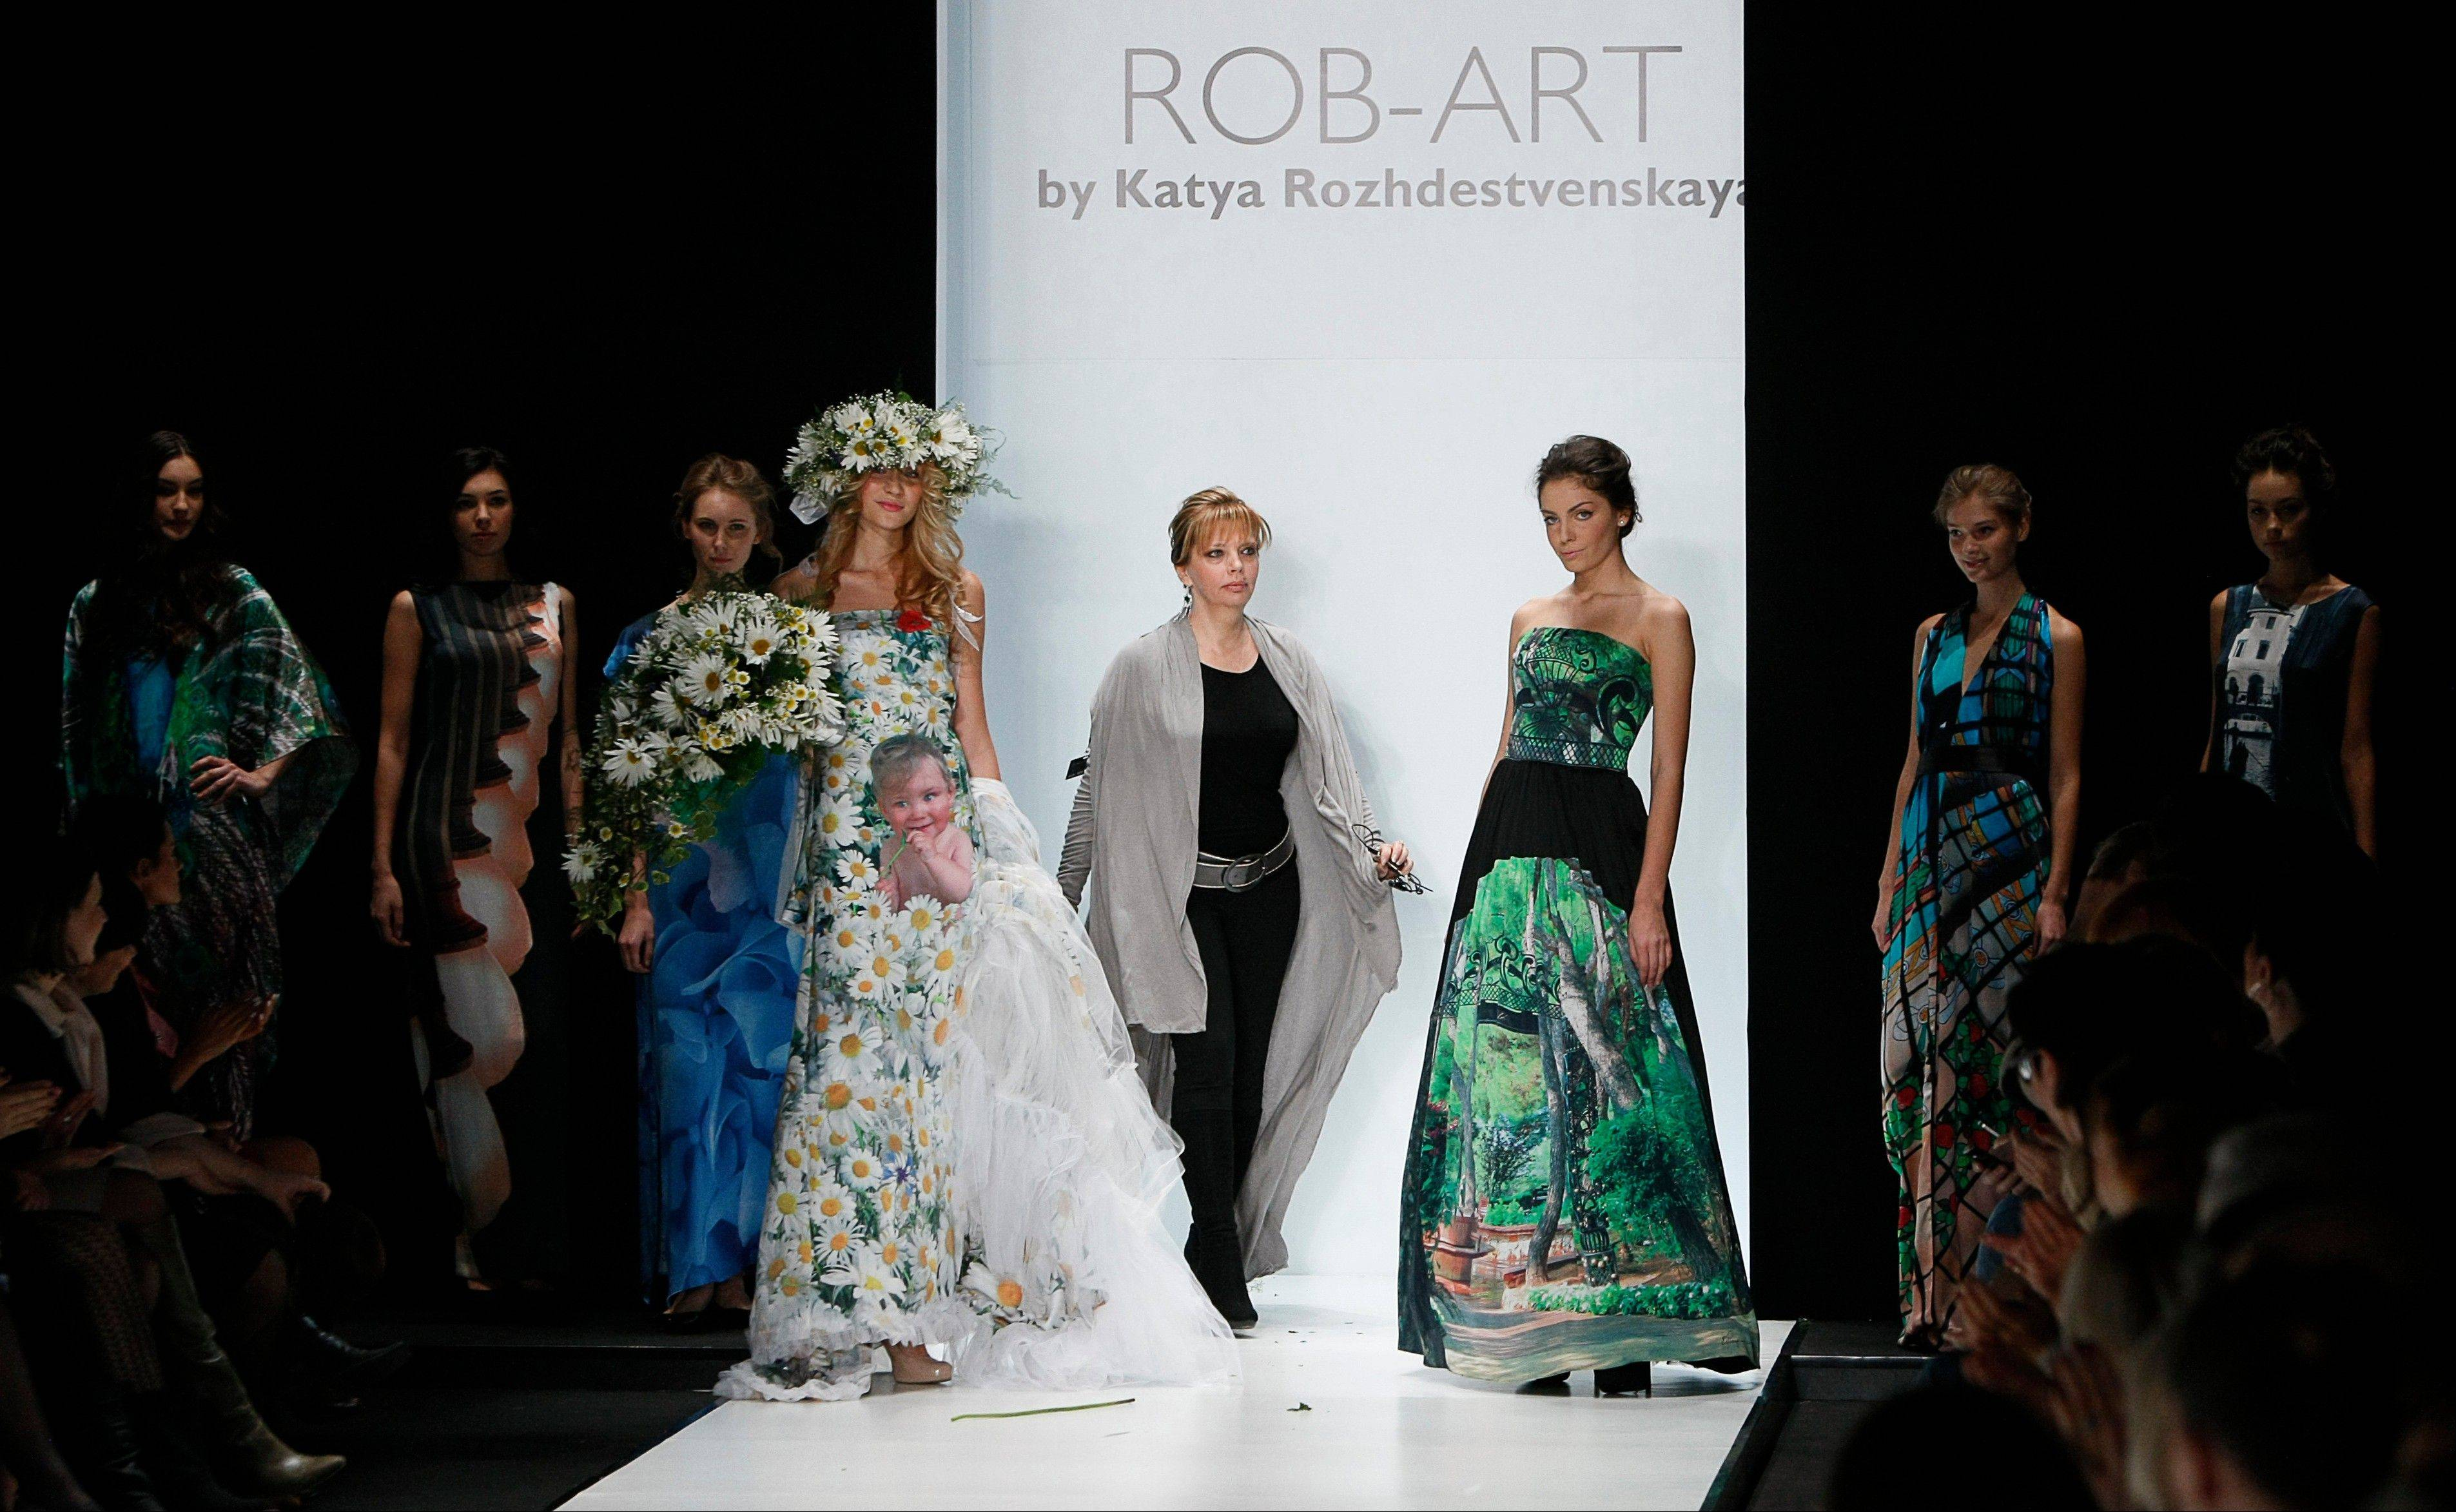 Models dressed in ROB-ART creation greet Russian designer Katya Rozhdestvenskaya, center, during Spring-Summer 2012 collection at Mercedes-Benz Fashion Week in Moscow, Russia, Tuesday, Oct. 25, 2011.